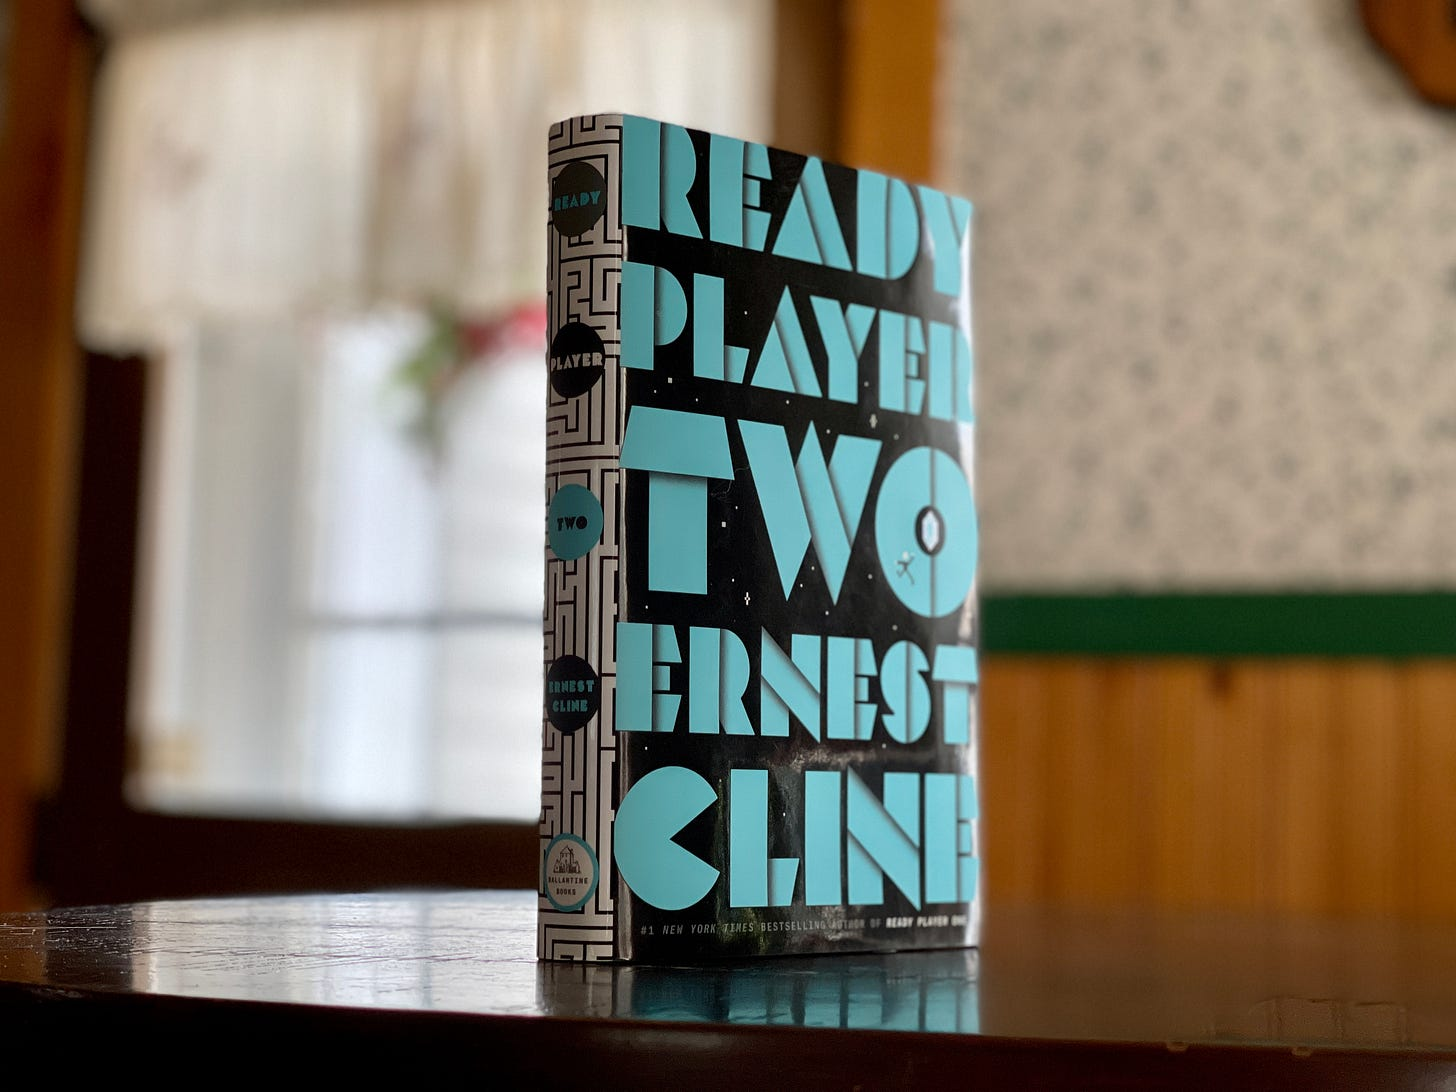 A single copy of Ready Player Two, title and author listed in light blue on a black background, stands on a kitchen table.